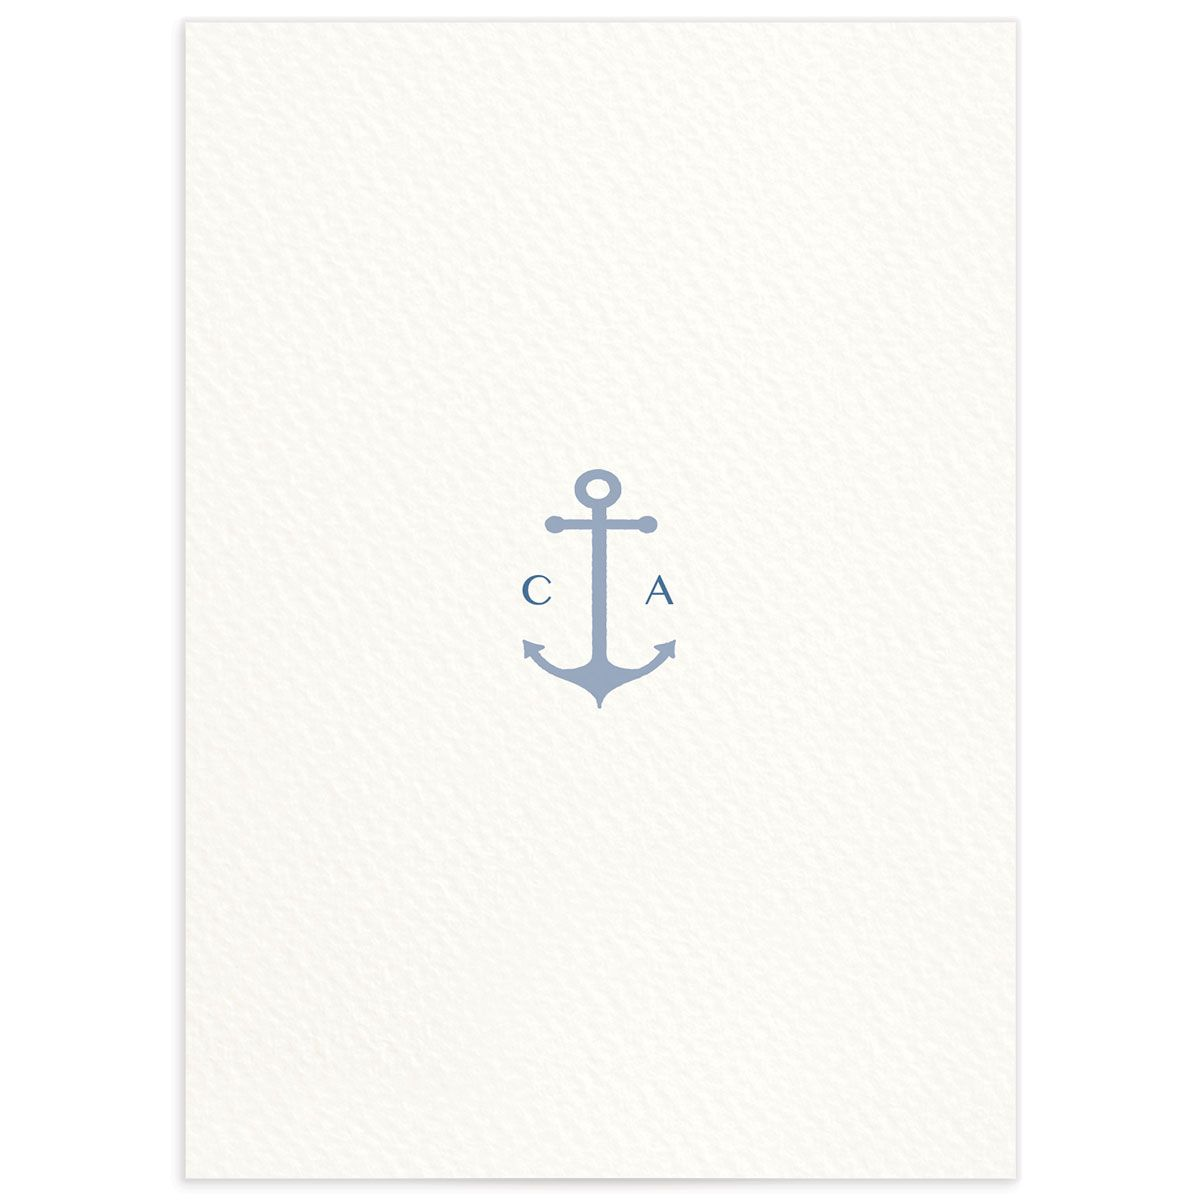 Coastal Love wedding details card in blue back